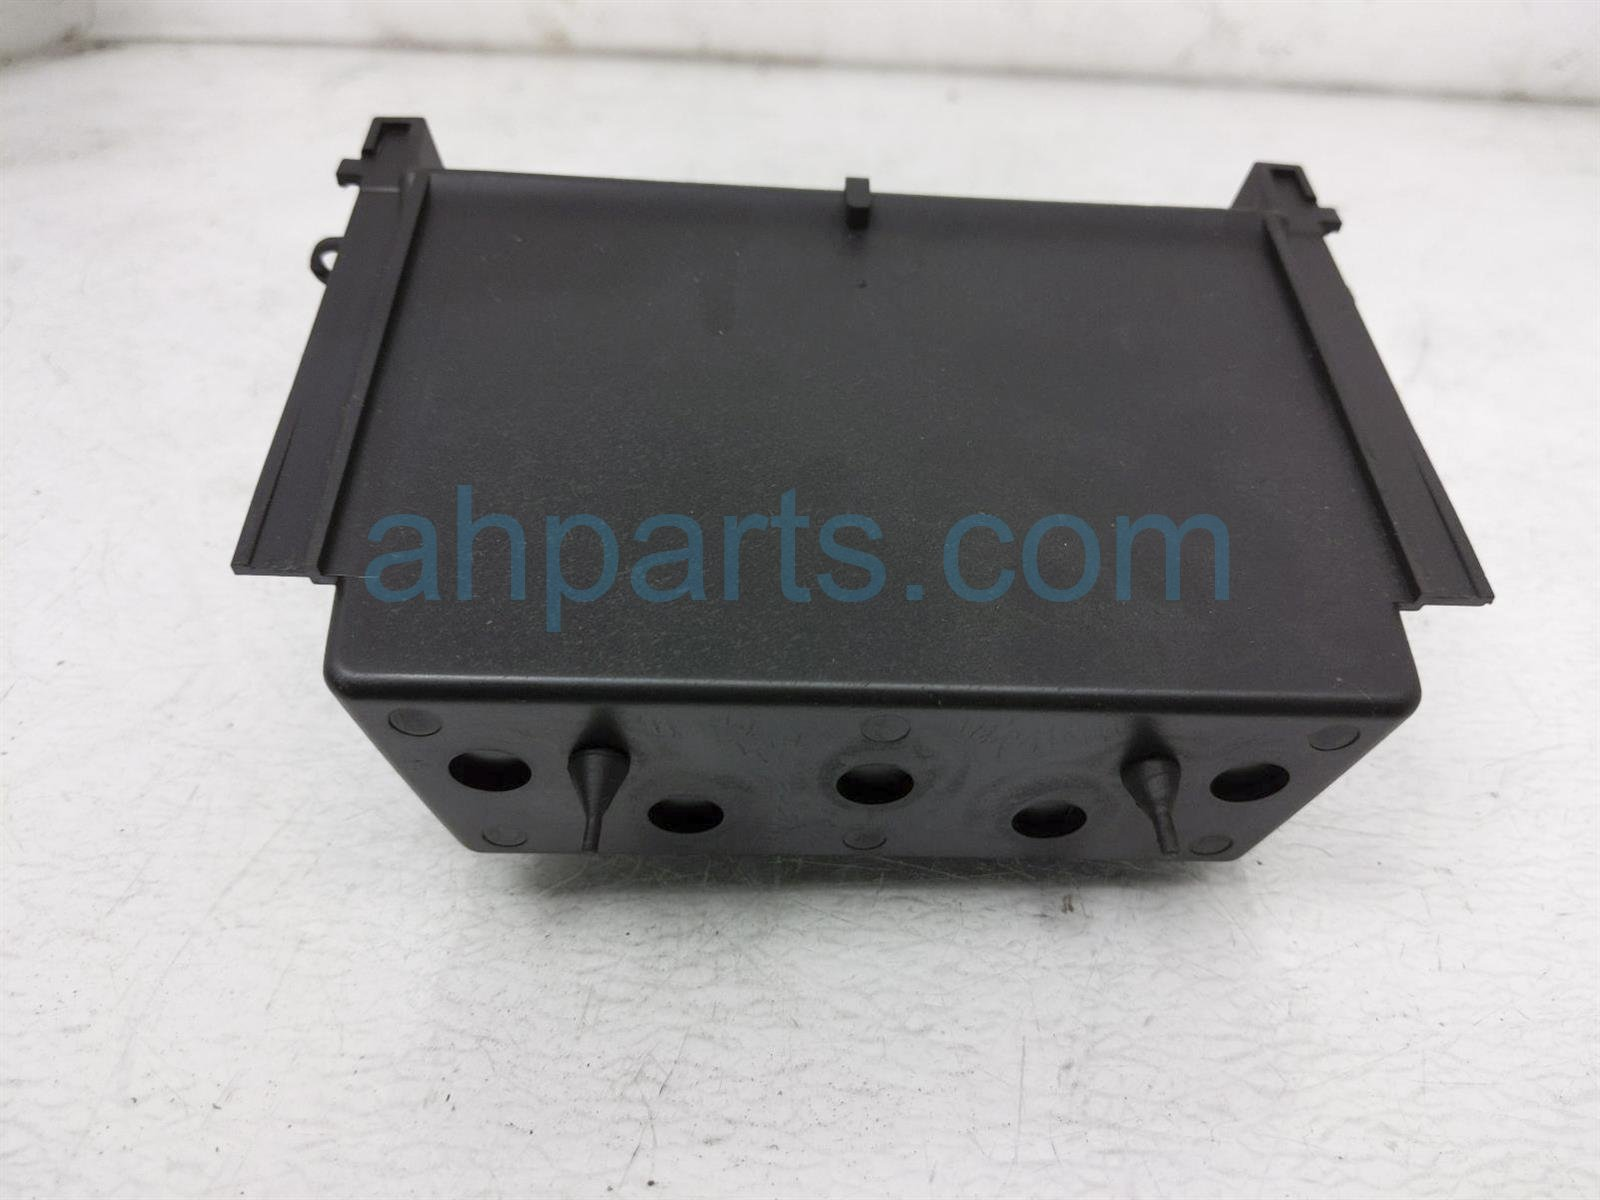 Sold 2011 Porsche Cayman Front Cubby Box Assy   Black 997 553 143 02 A05 Replacement